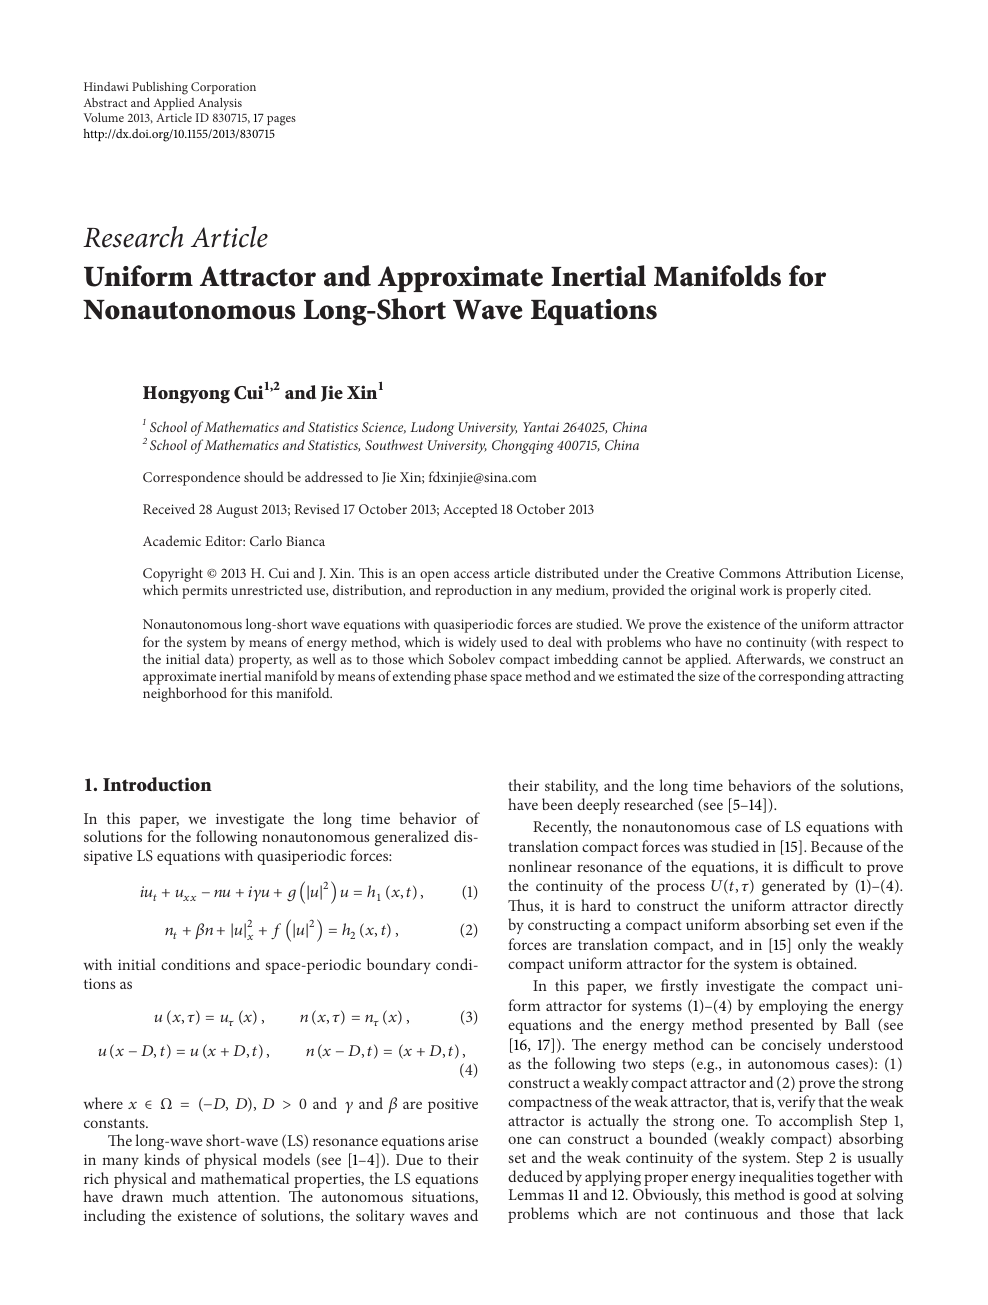 Uniform Attractor and Approximate Inertial Manifolds for